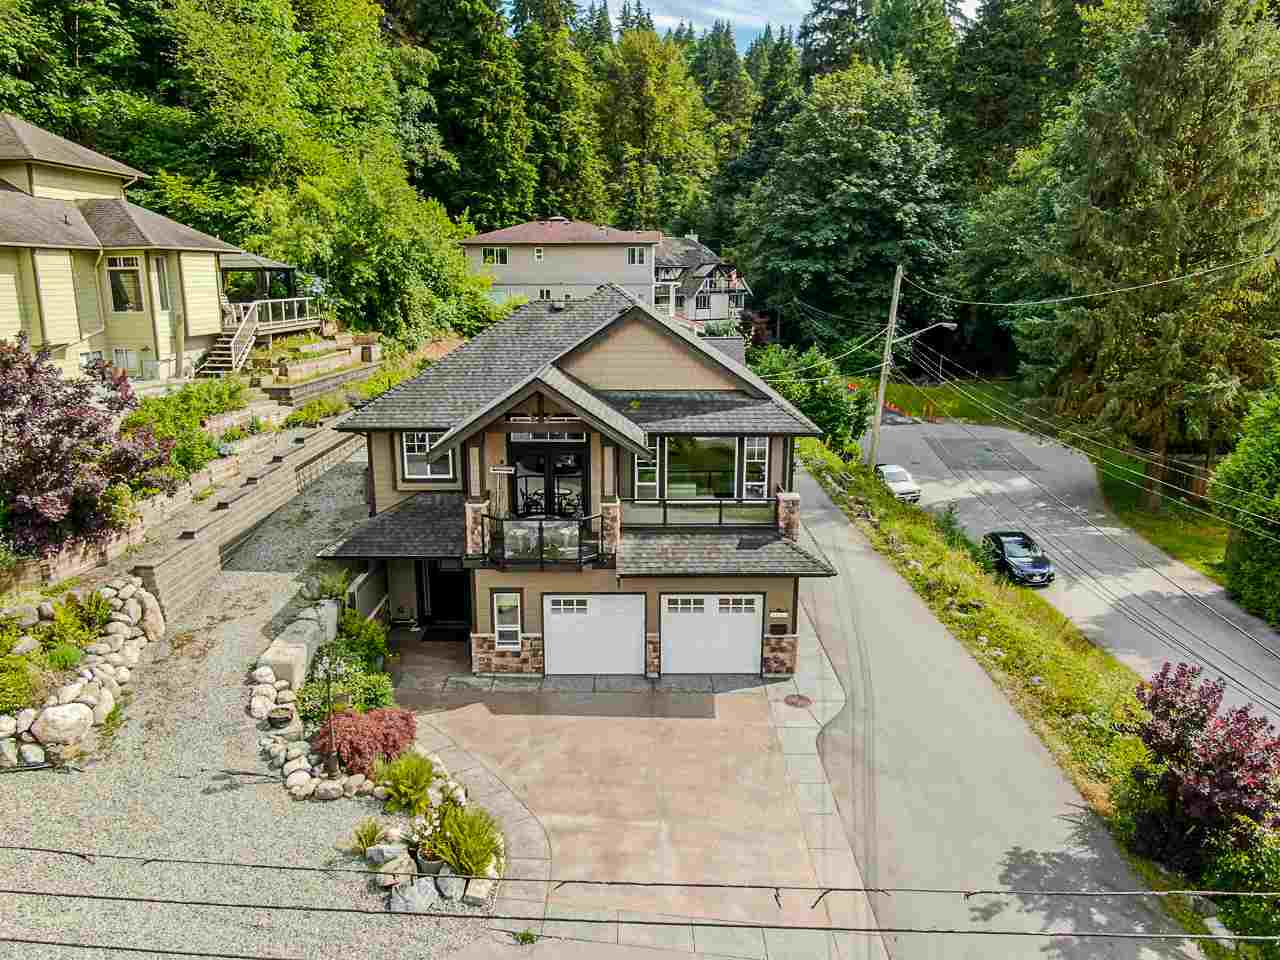 2801 IVY STREET - Port Moody Centre House/Single Family for sale, 5 Bedrooms (R2481875) - #3